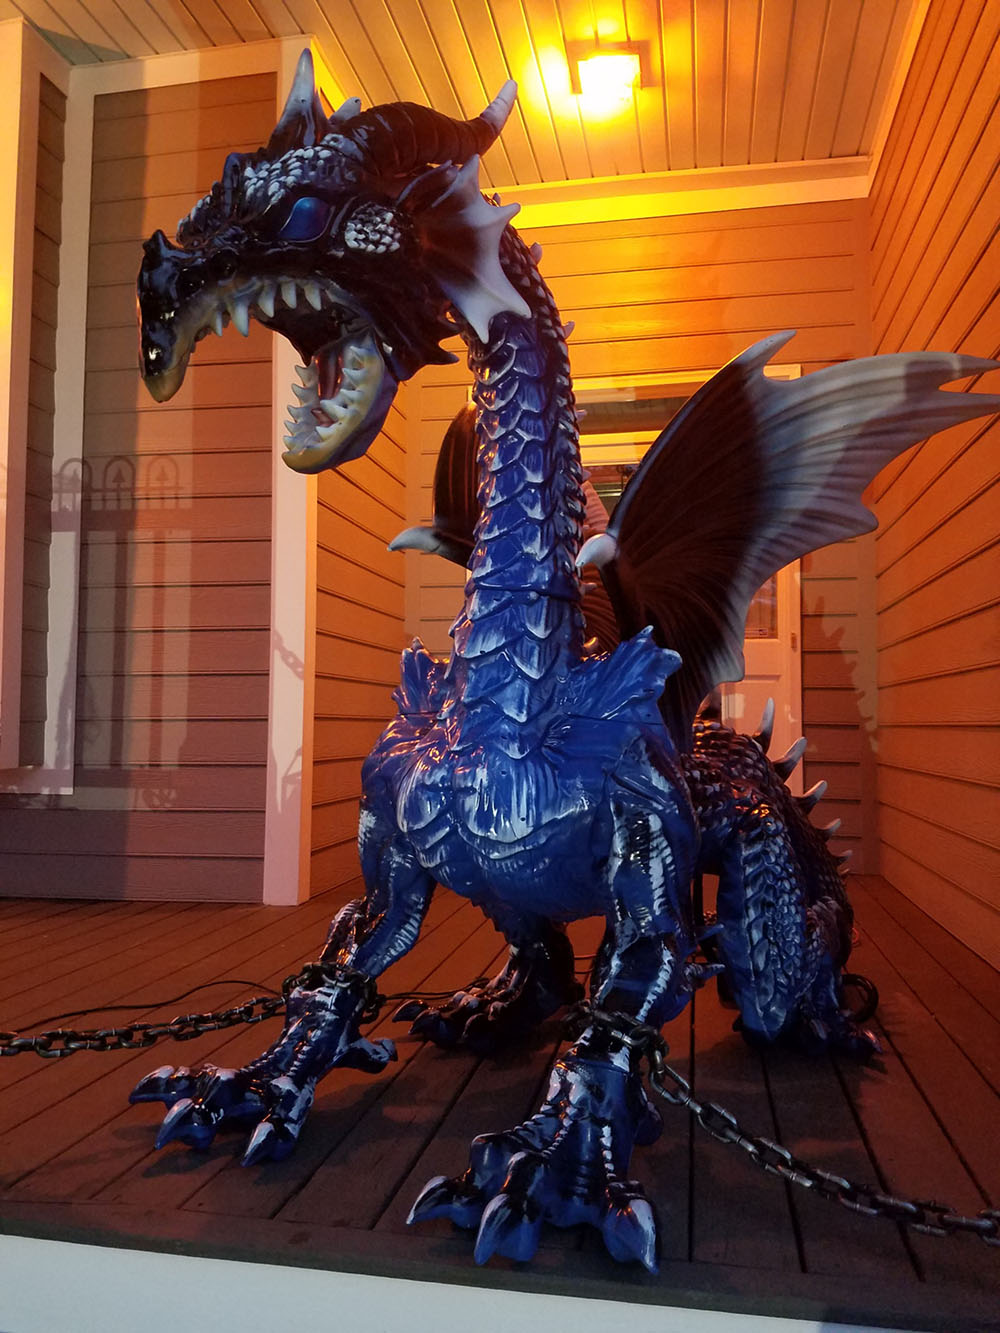 A large dragon with chains sitting on a front porch.